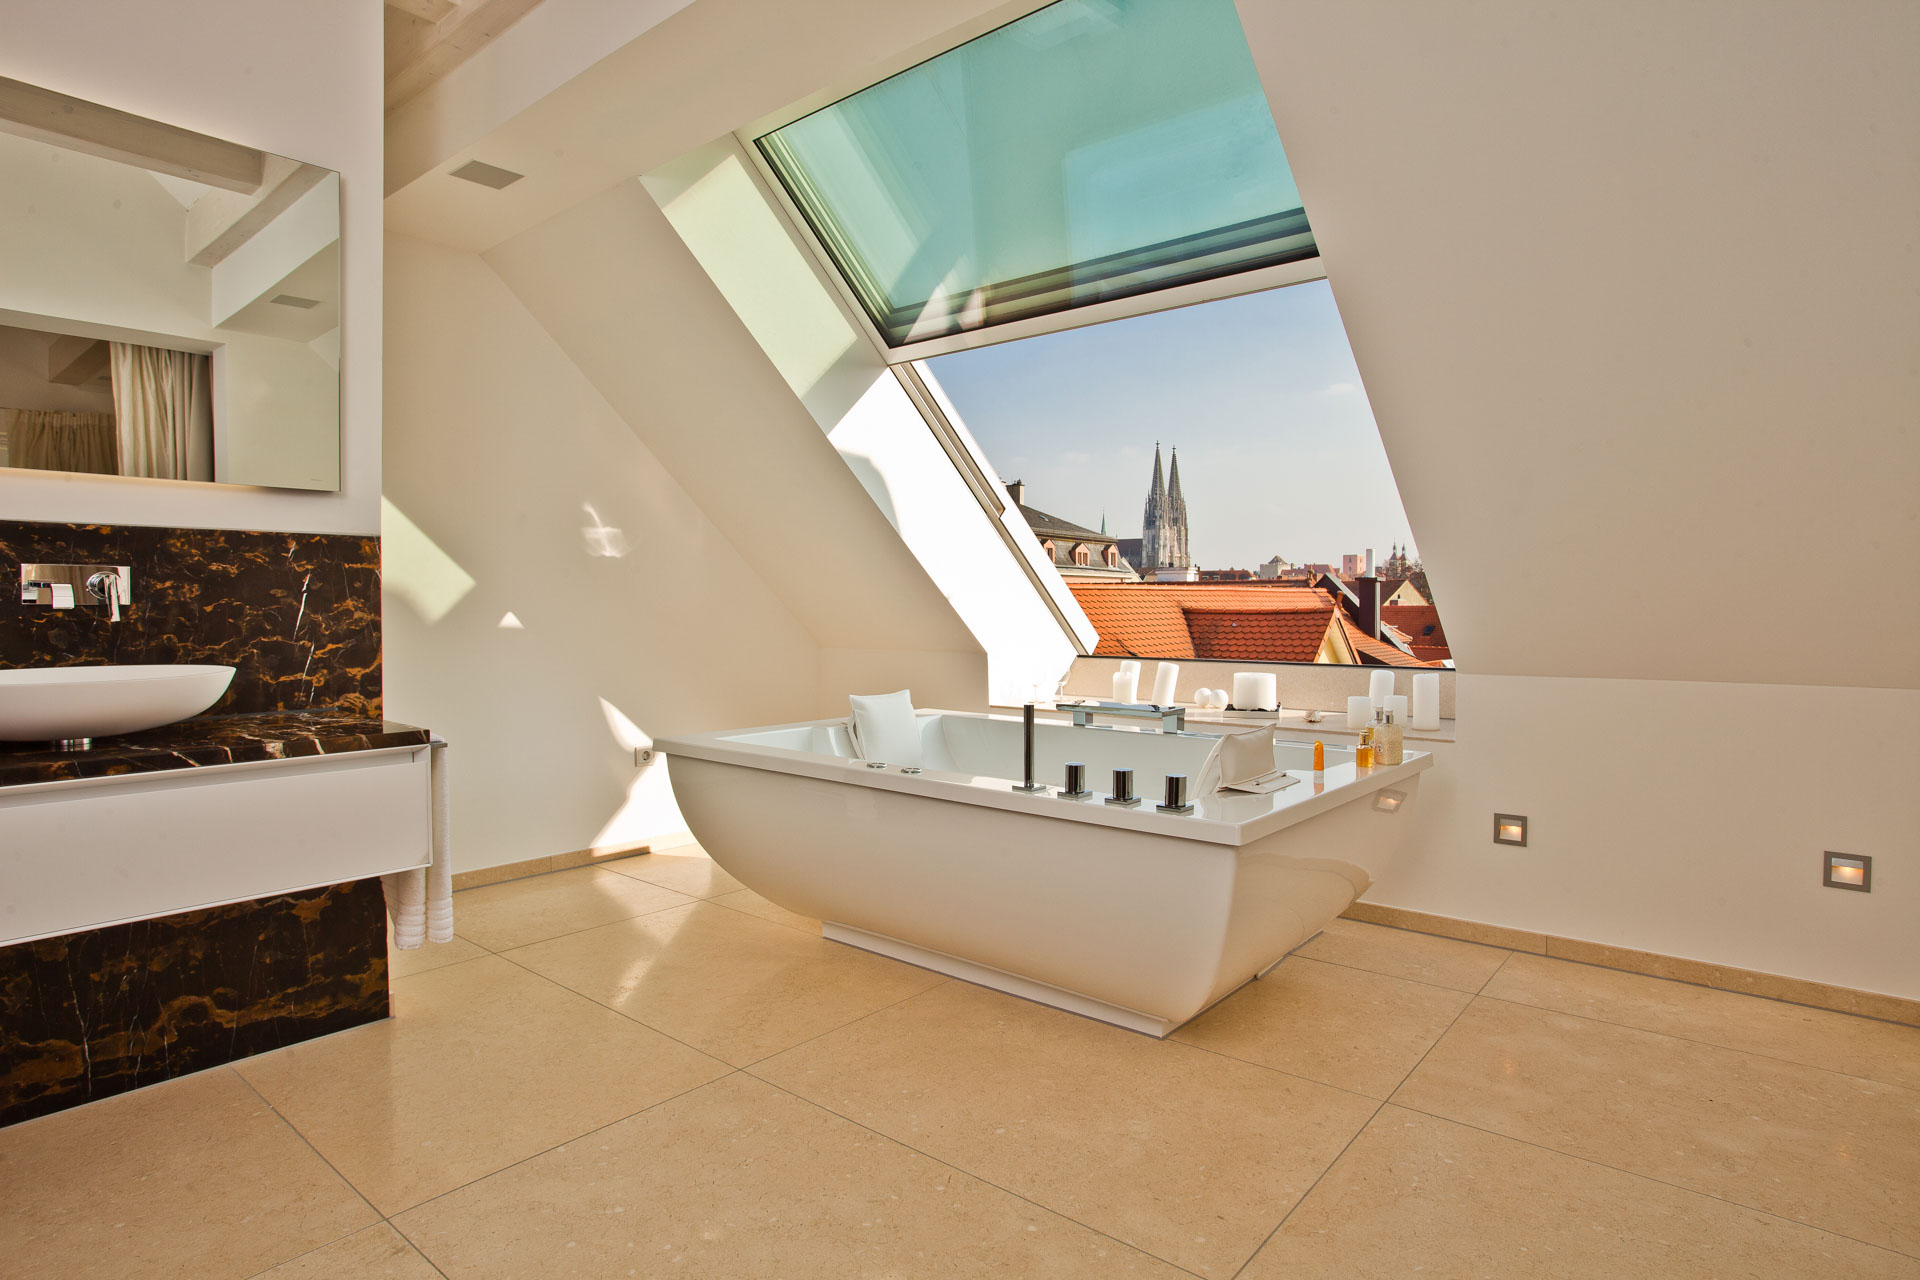 OpenAir roof sliding window in Regensburg (object 1100). A bathroom can be realized excellently under sloping roof surfaces. Attractive furnishing concepts and generous window areas make inviting wellness landscapes possible.